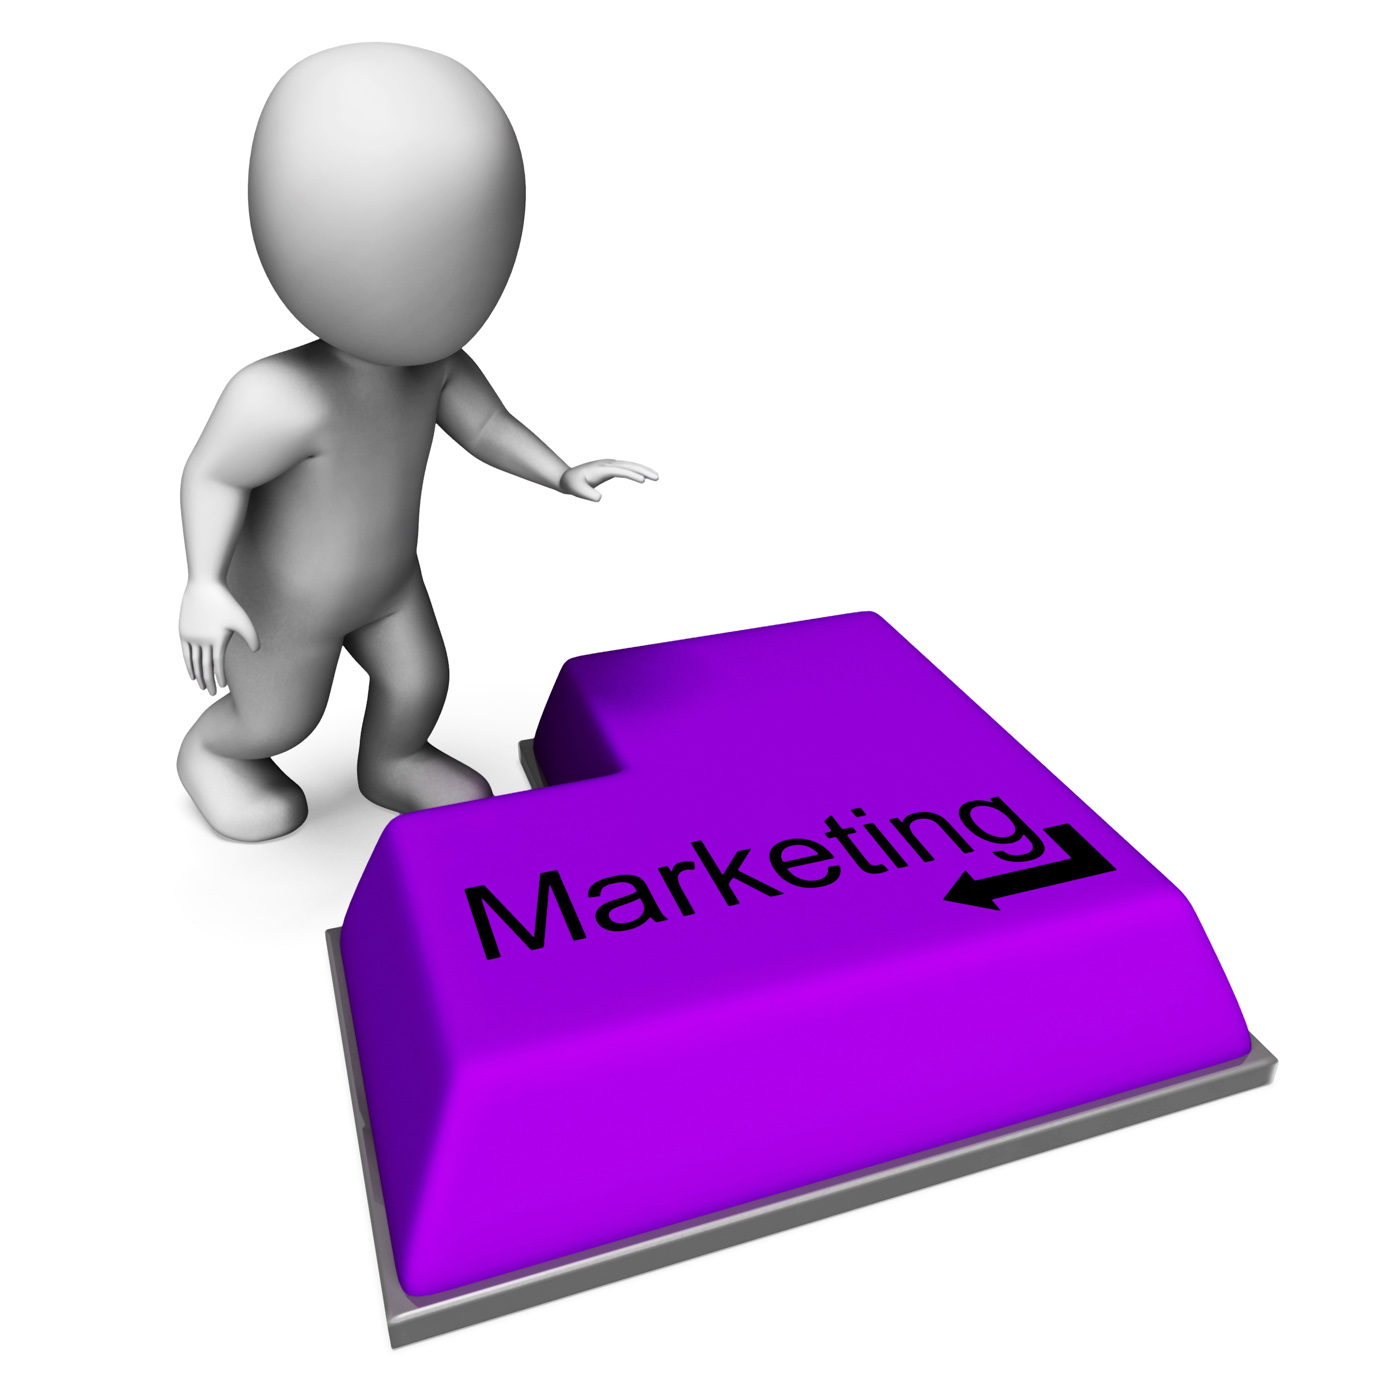 Marketing Key Shows Promotion Advertising And PR, Advertisements, Online, Socialmedia, Publicrelations, HQ Photo